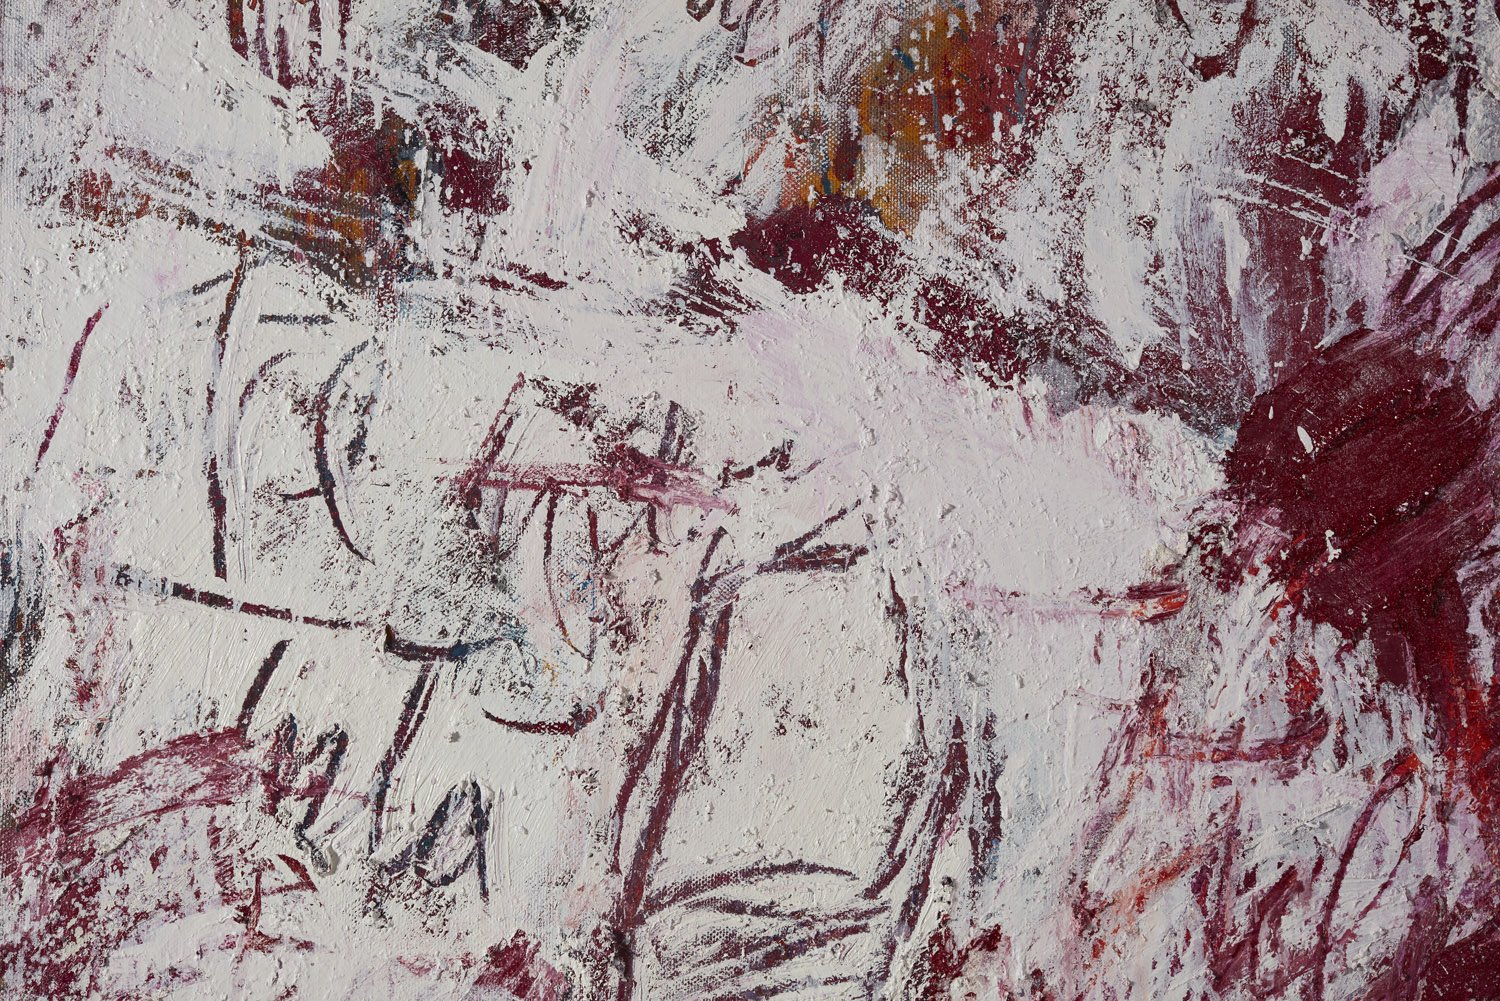 Aida Tomescu, Folded into the white of my words I (detail)